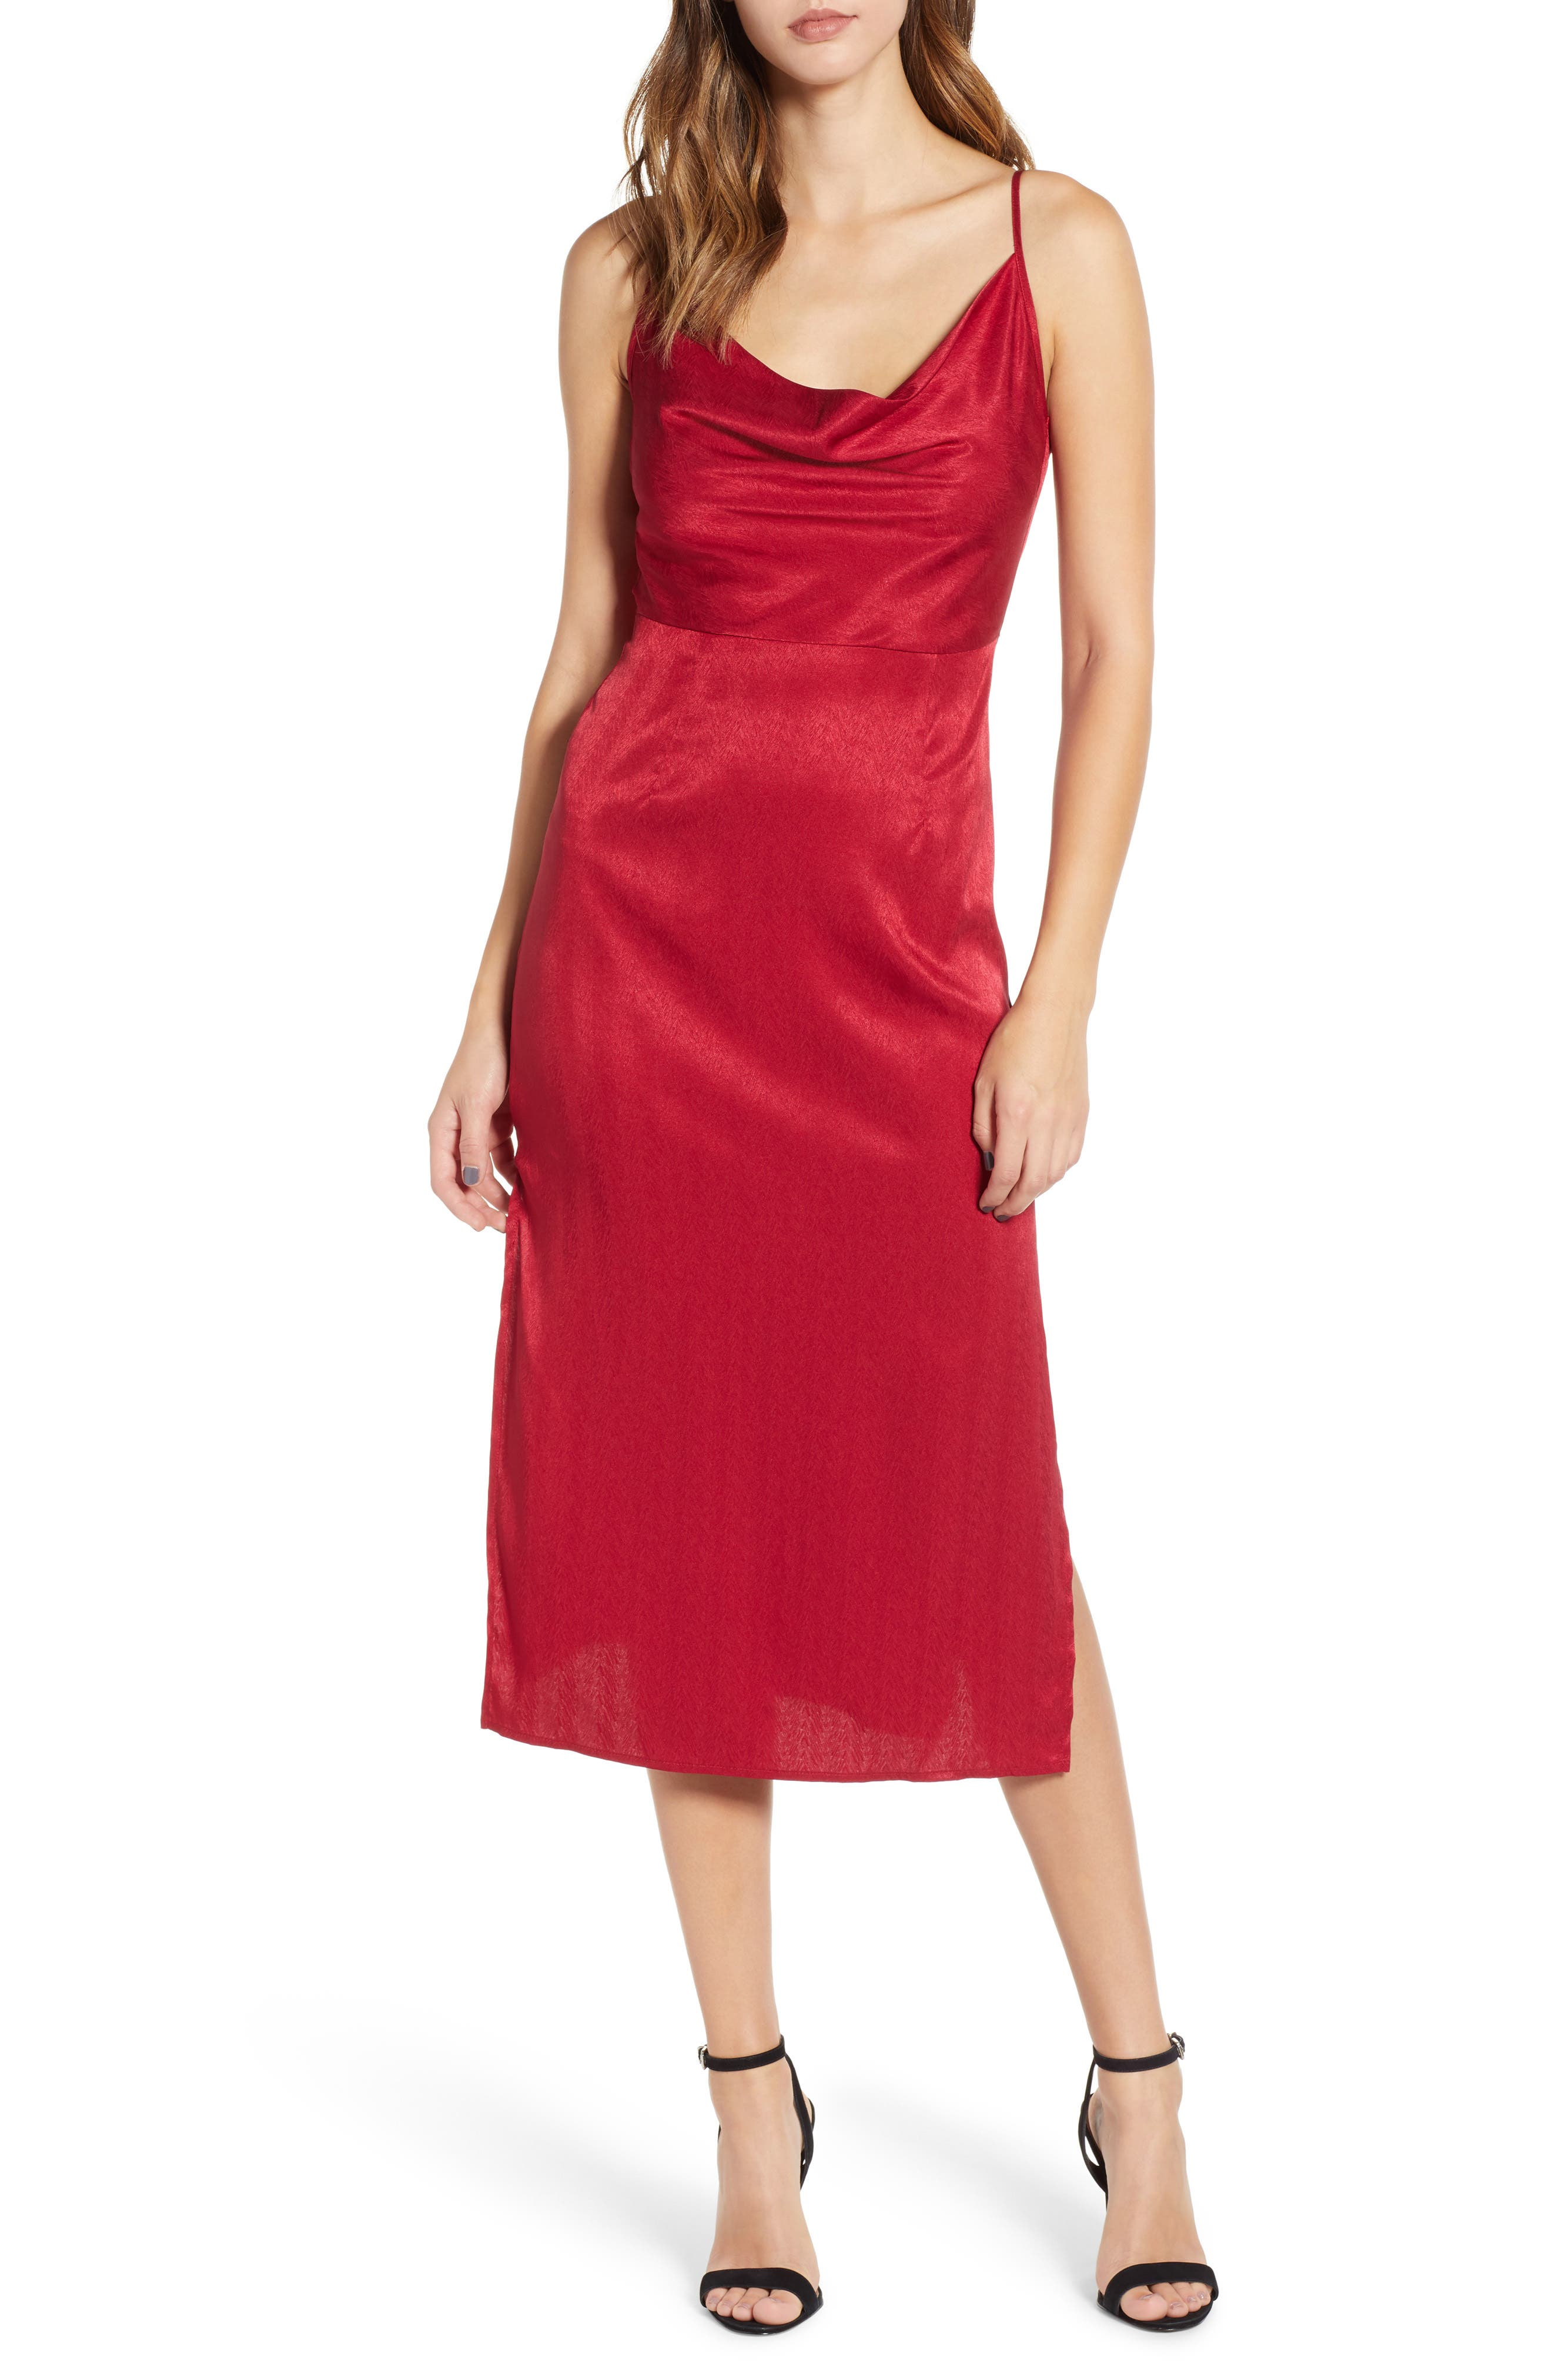 Lotti Cowl Neck Midi Dress,                             Main thumbnail 1, color,                             CHERRY